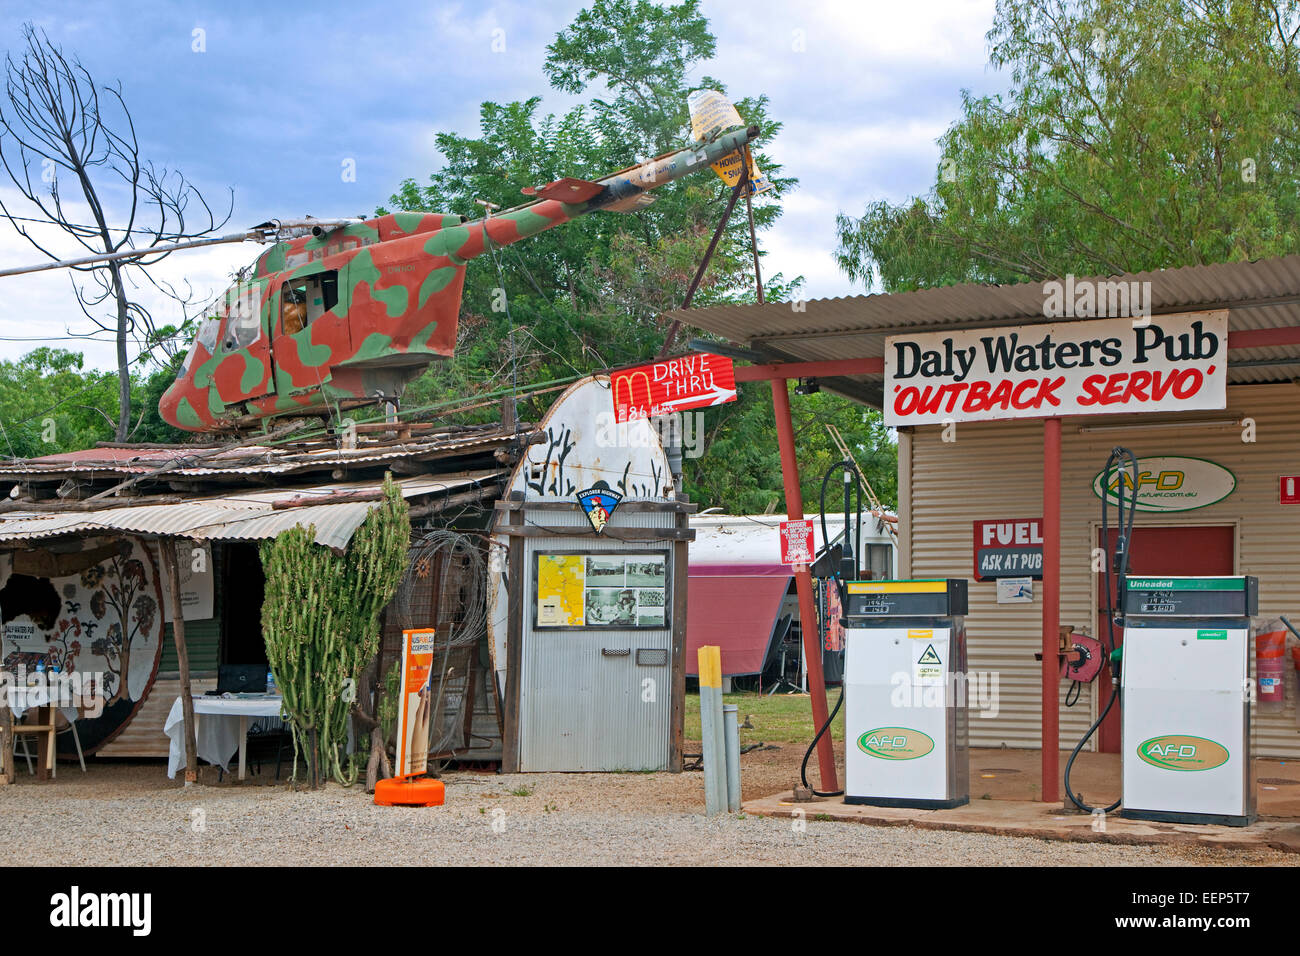 The Daly Waters Pub Outback Servo with old helicopter along the Stuart Highway, Northern Territory, Australia - Stock Image